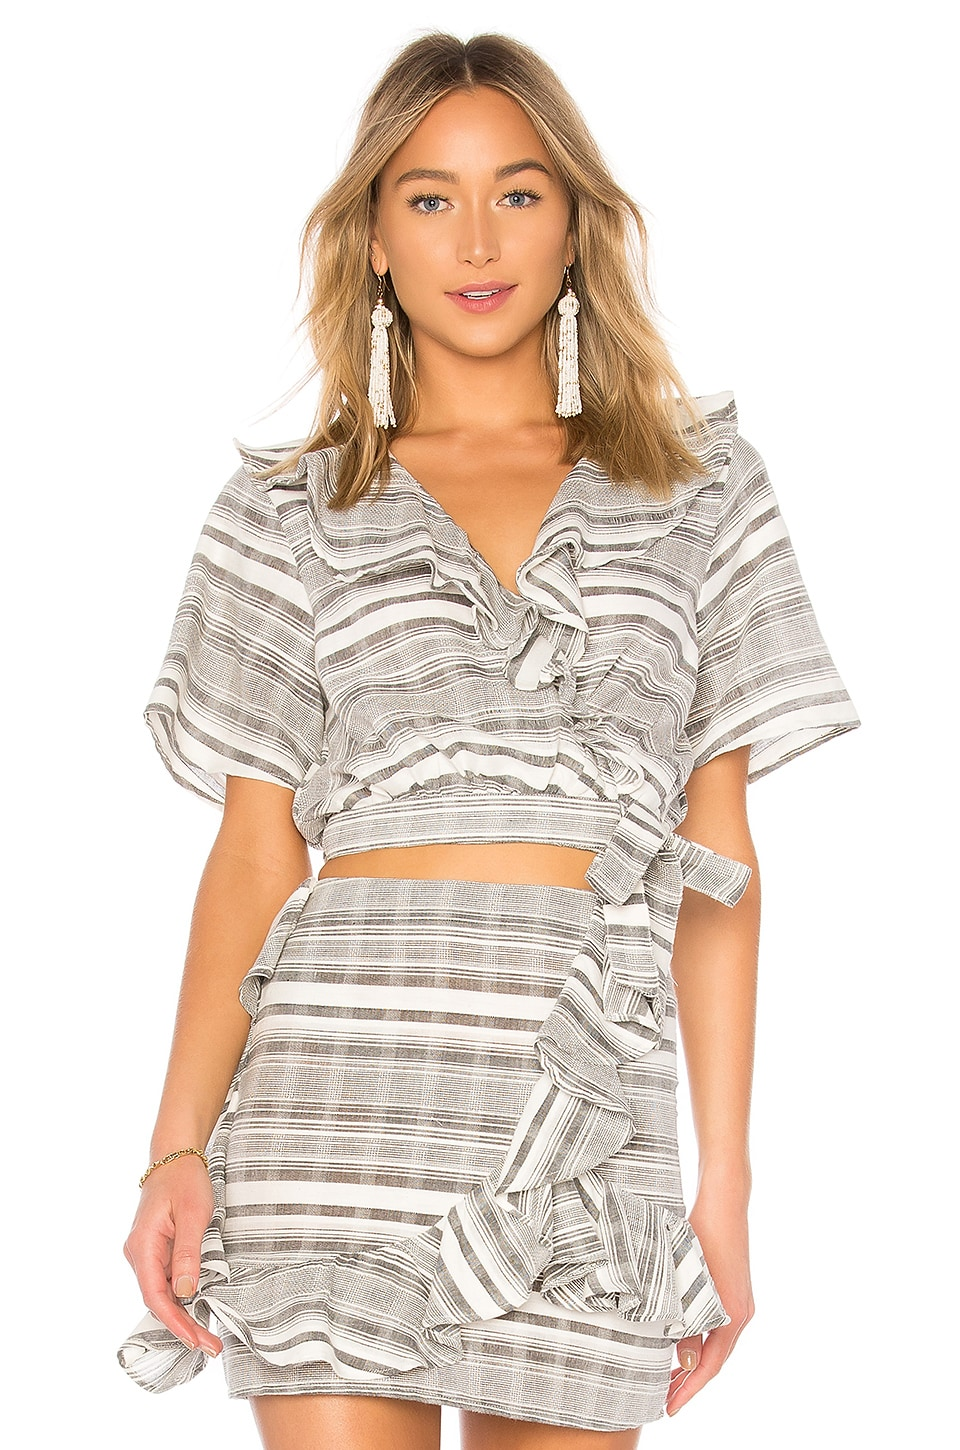 Tularosa Selma Wrap Top in Lakeside Stripe